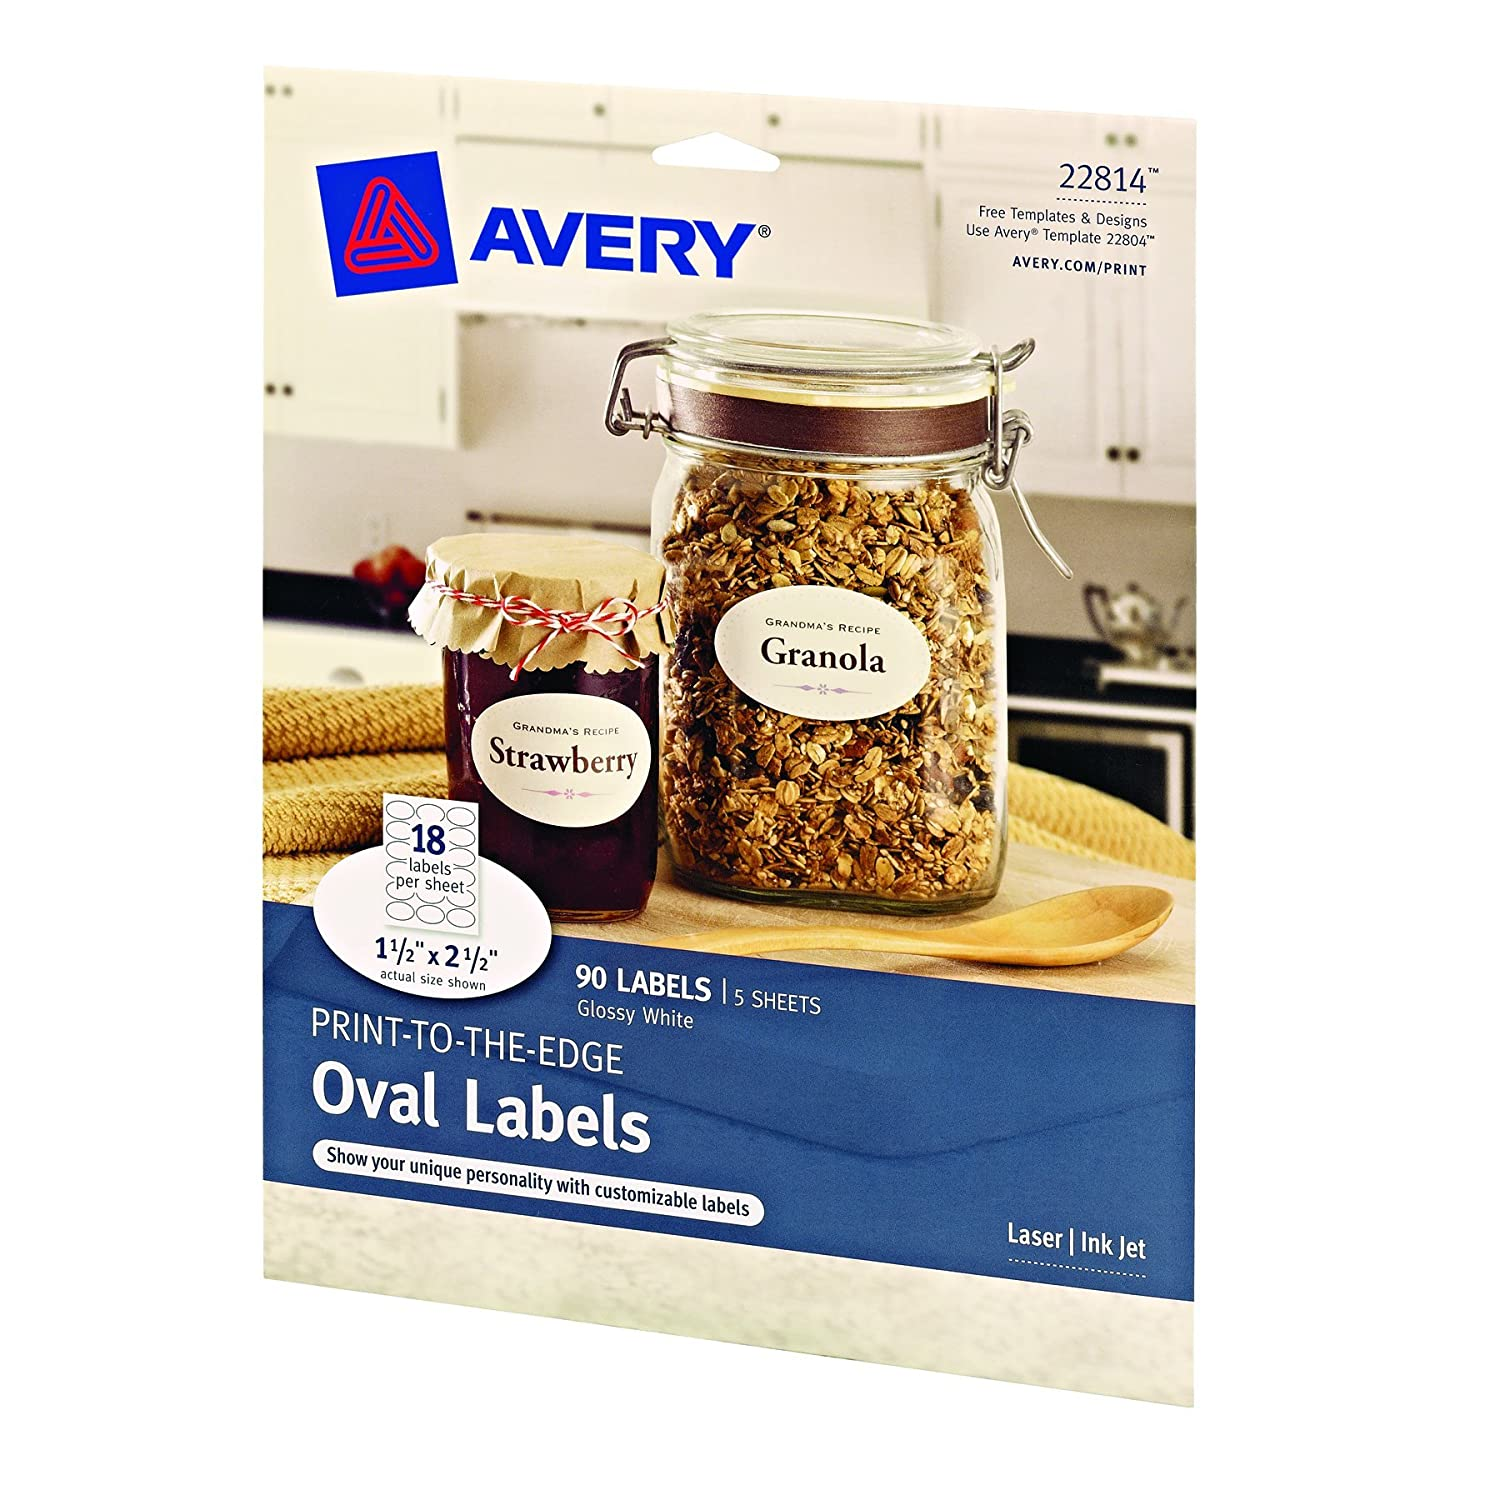 amazon com avery print to the edge oval labels glossy white 1 5